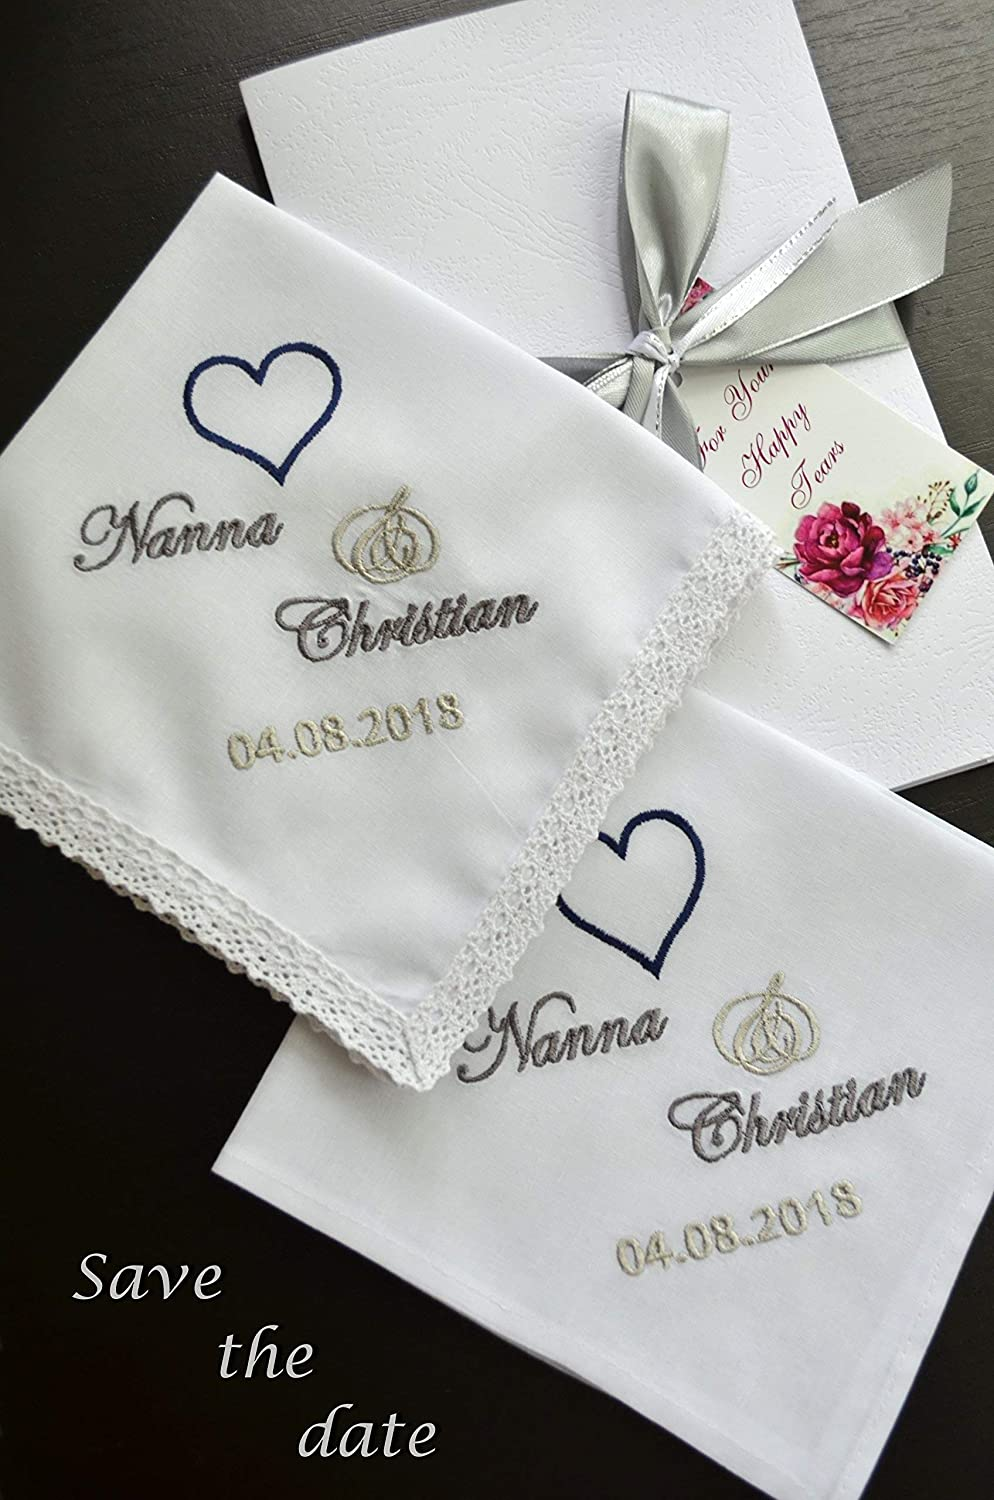 Wedding Handkerchiefs Set of 2 for parents Save the date Personalised Embroidered gift for Mom and Dad Special gift on your wedding day mother of the Bride Father of the Groom Personalized embroidered